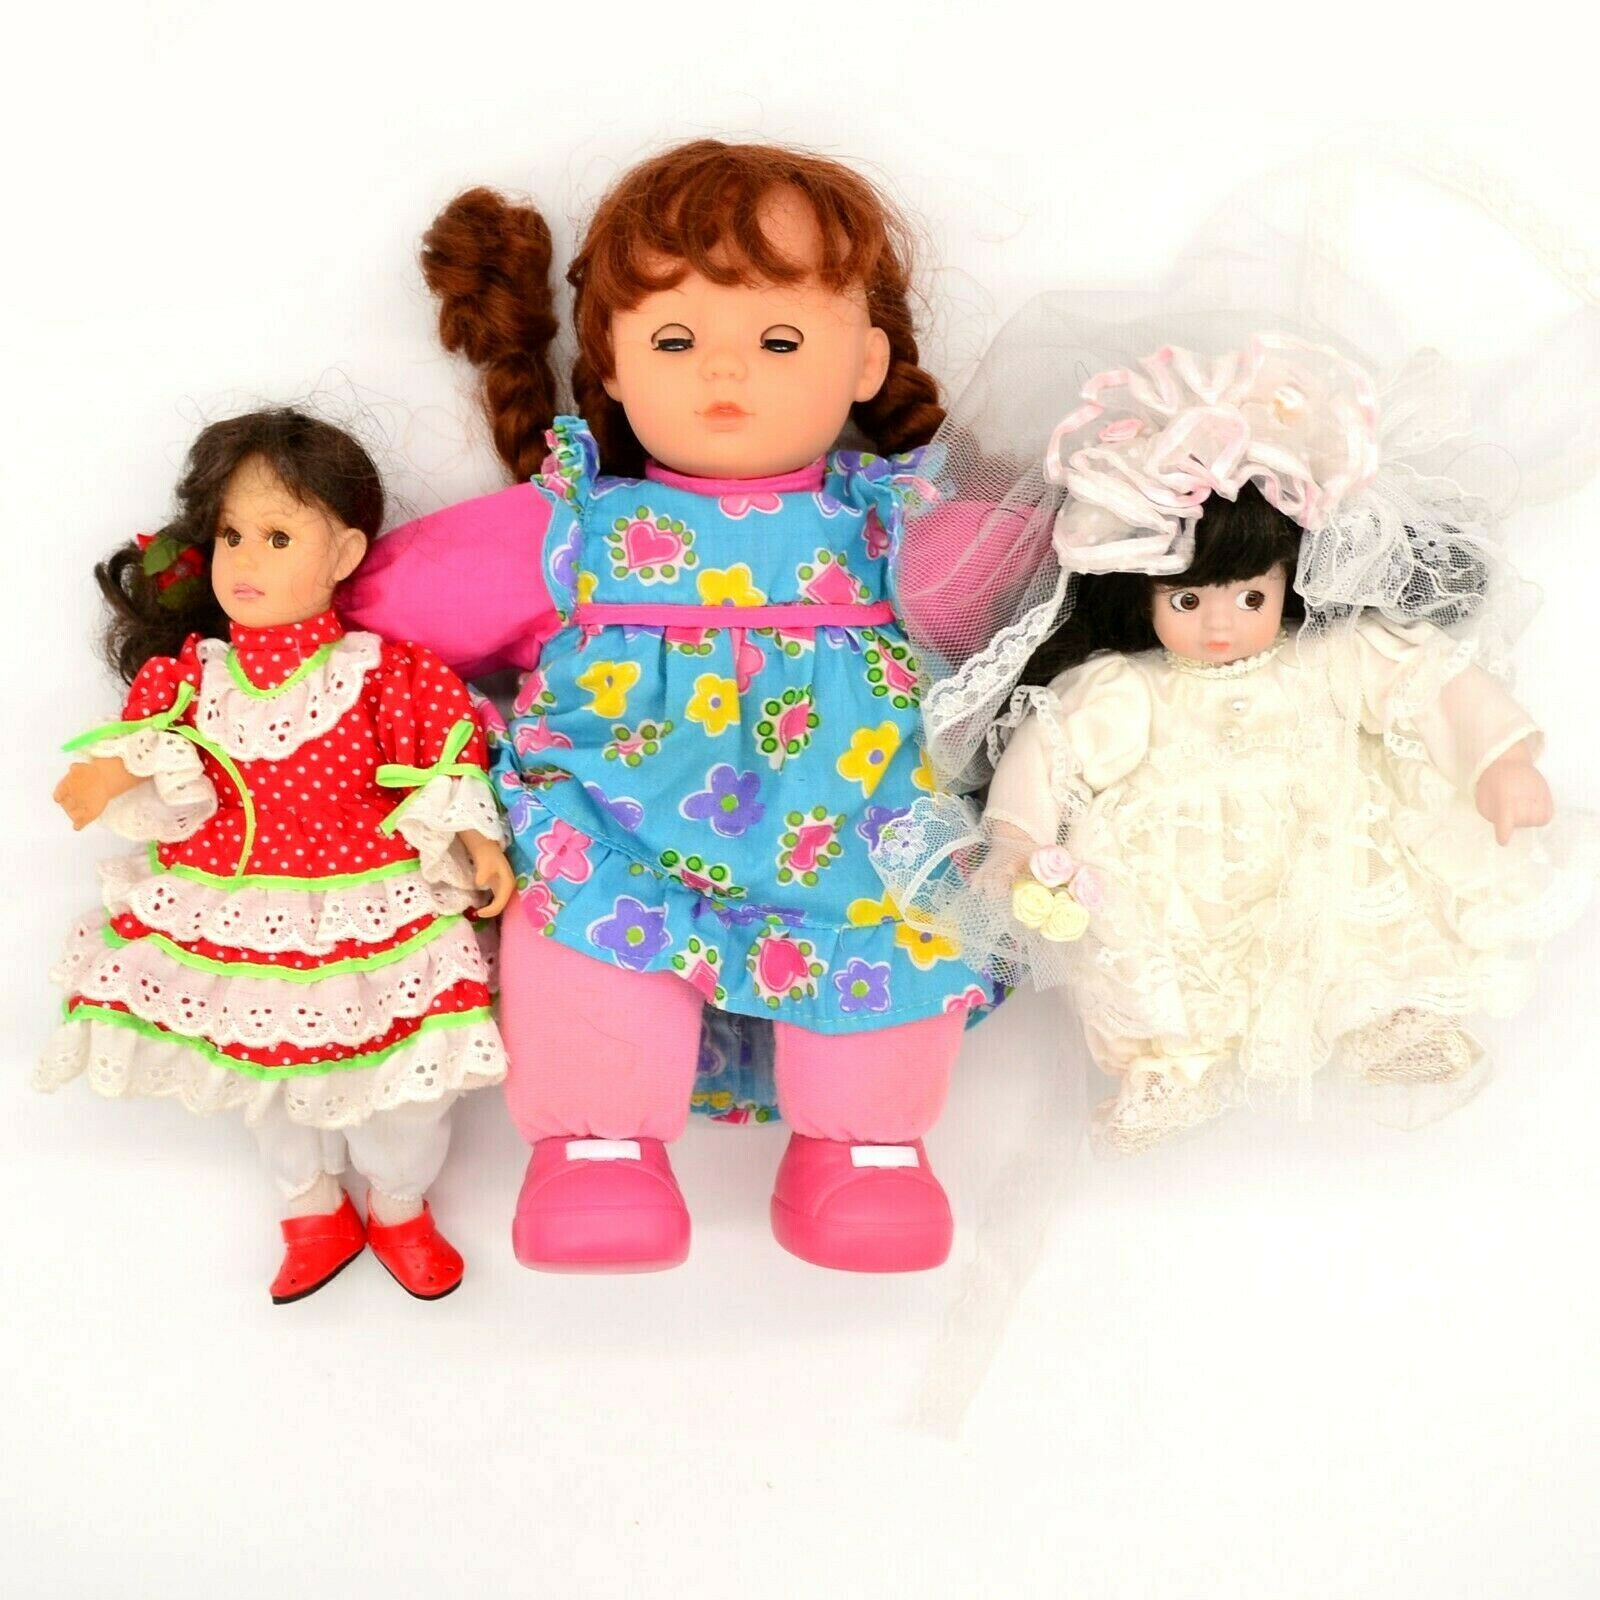 Primary image for Lot of 3 Various Dolls Bride Doll Square Dancing Doll Little Girl Laughing Doll